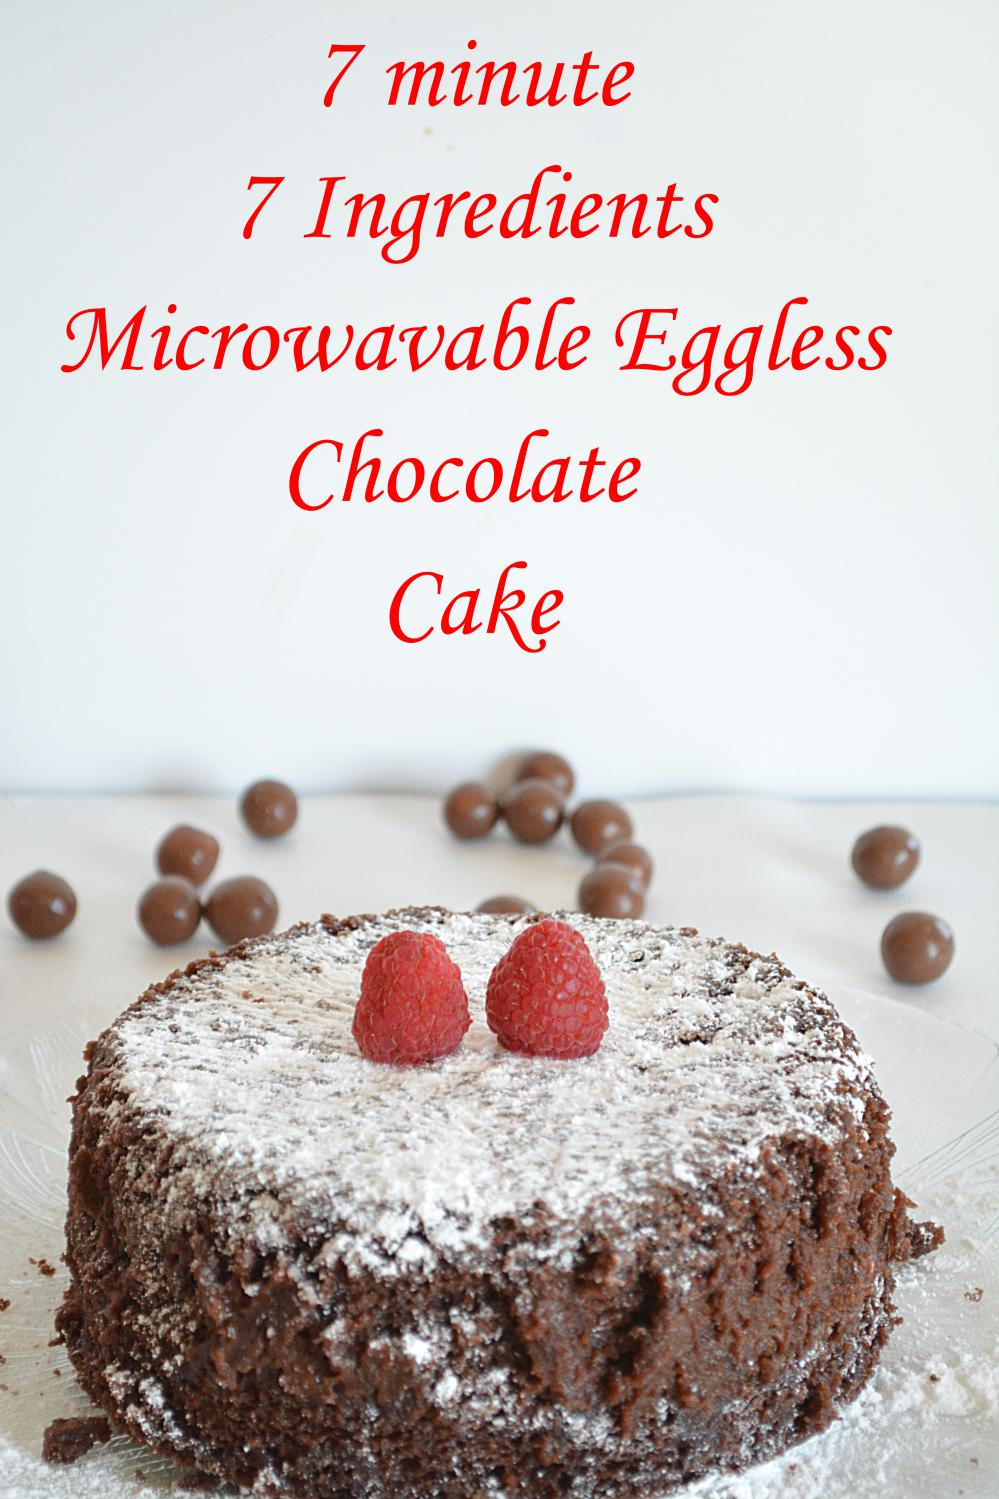 7 minute Eggless Chocolate Cake image